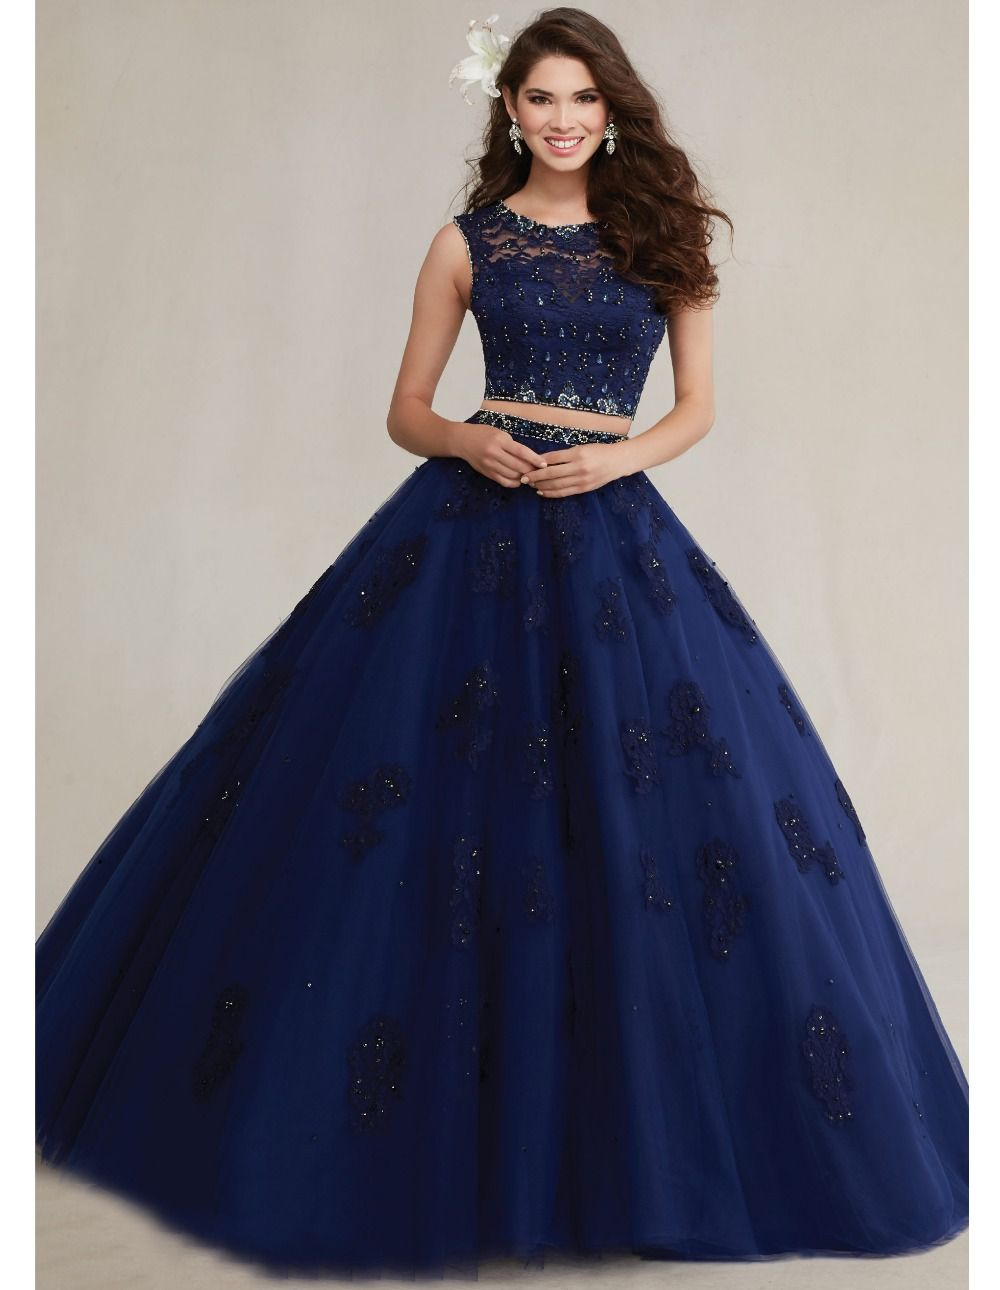 72d5532e4a Newest crystal lace royal blue sweet 16 dresses two pieces quinceanera  dresses blue masquerade party debut ball gowns YK 061